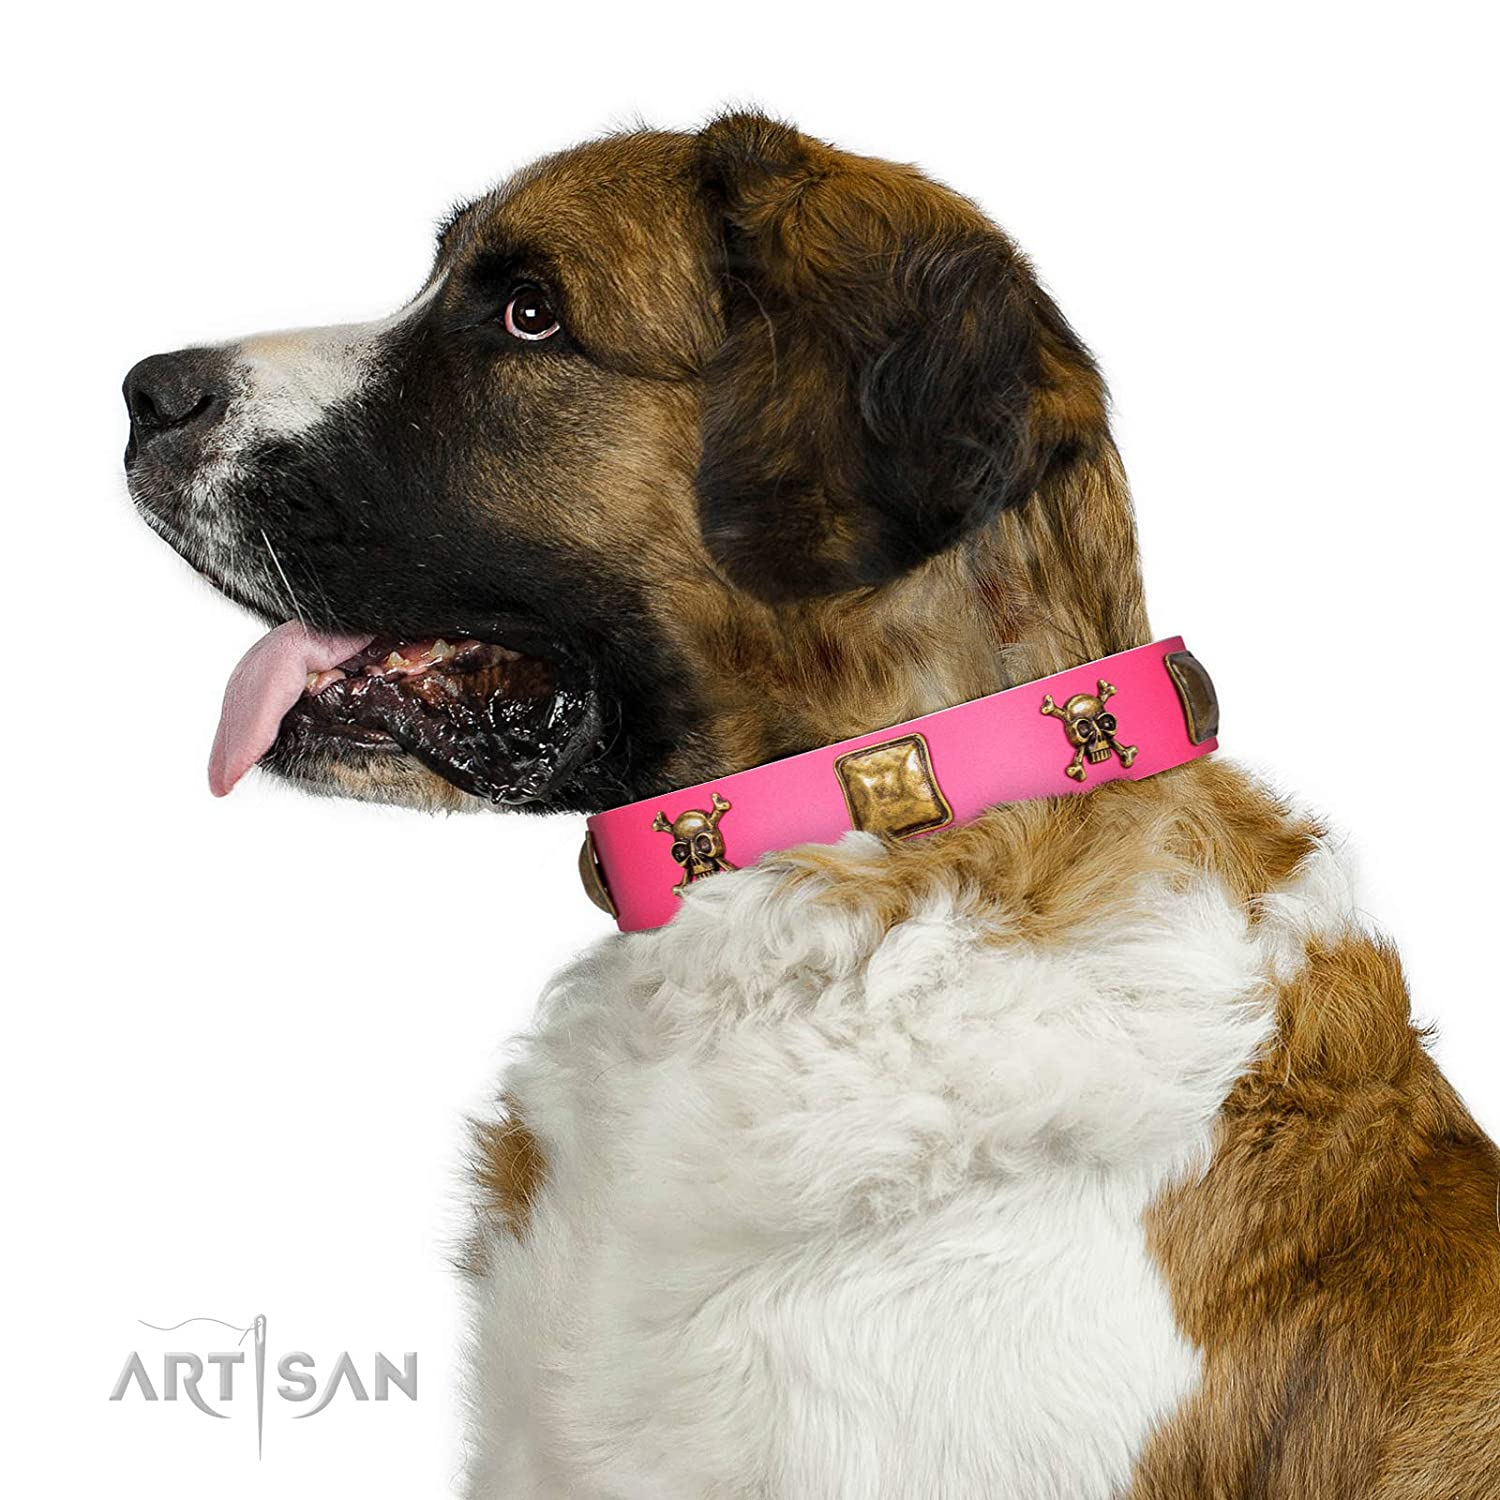 Fits for 21 inch (53cm) dog's neck size FDT Artisan 16 inch Pink Leather Dog Collar with Skulls and Crossboned Combined with Massive Plates Wild Box Included